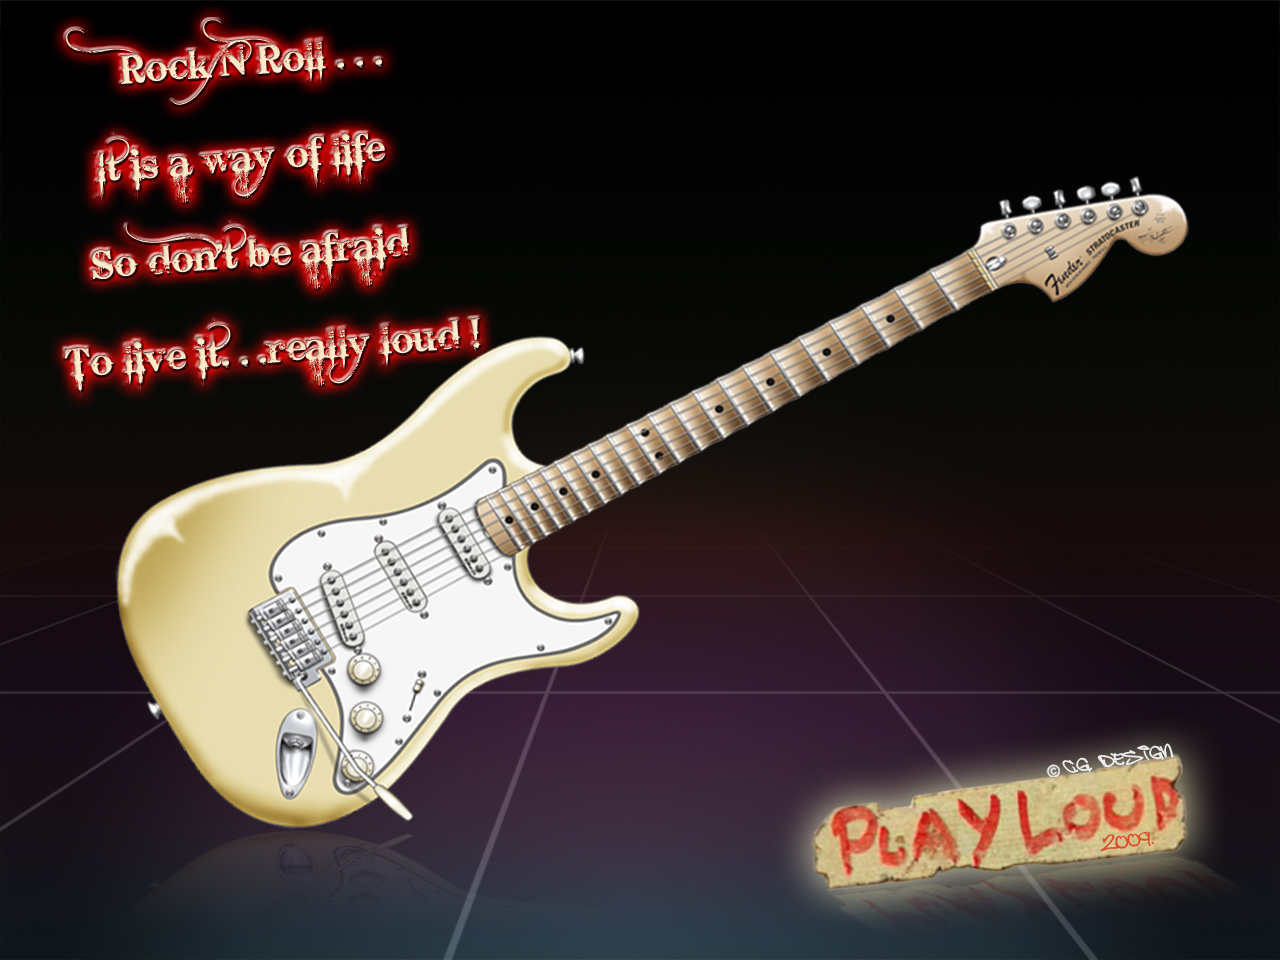 Fender Stratocaster Wallpaper Images amp Pictures   Becuo 1280x960